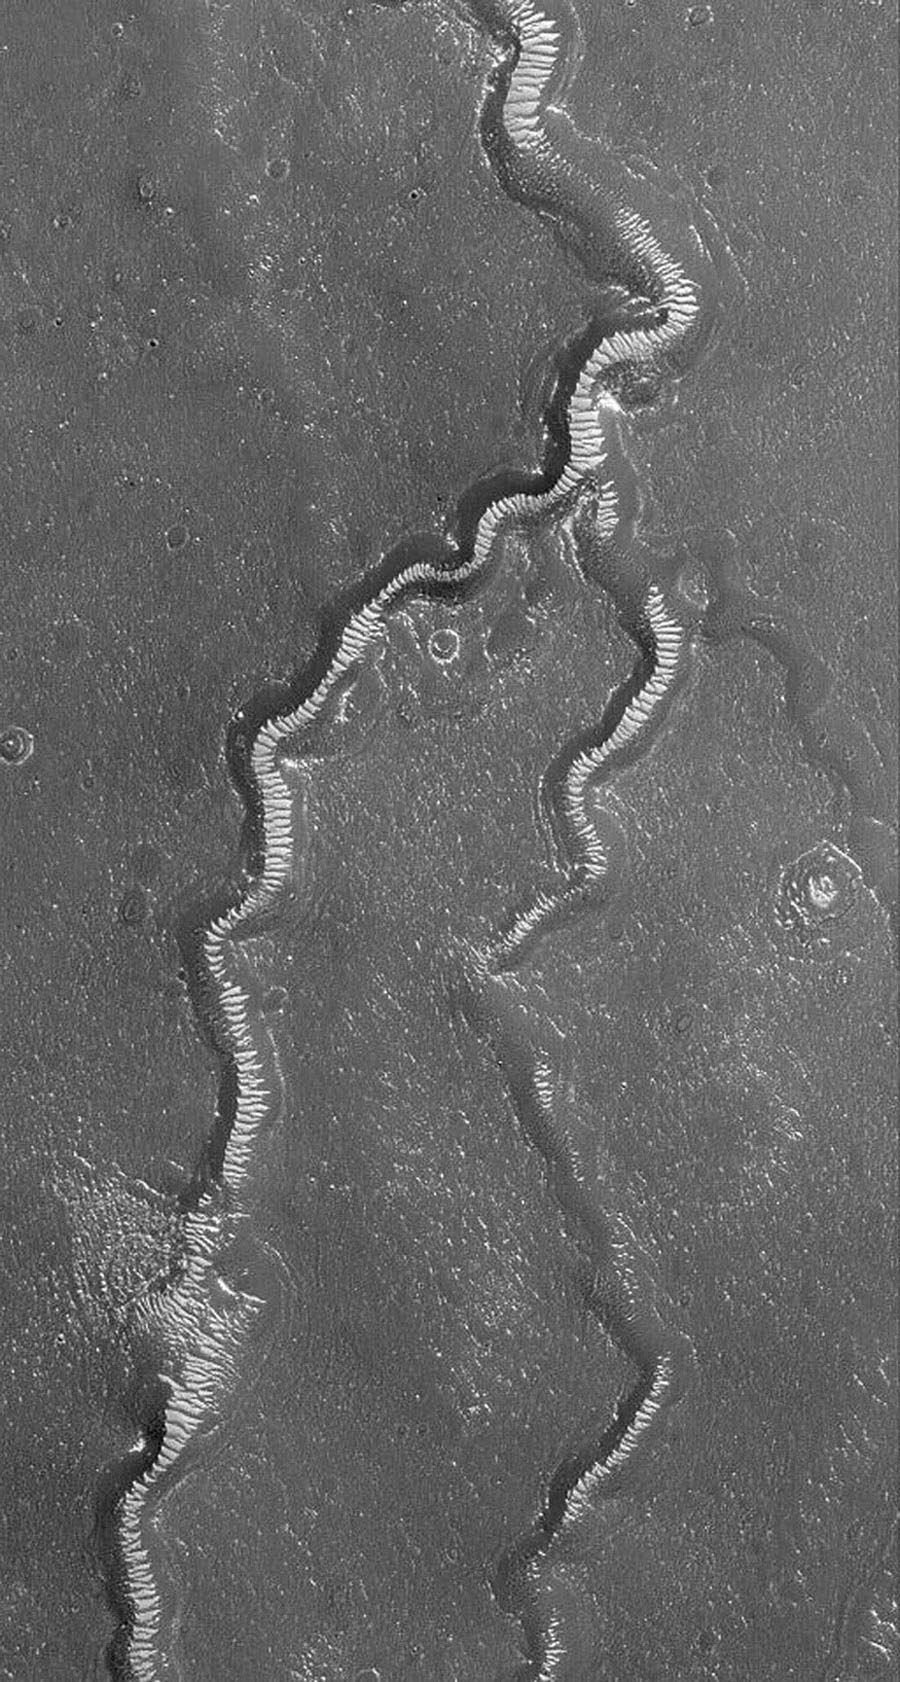 NASA's Mars Global Surveyor shows light-toned, windblown ripples on the floors of channels of the Apsus Vallis system on Mars.